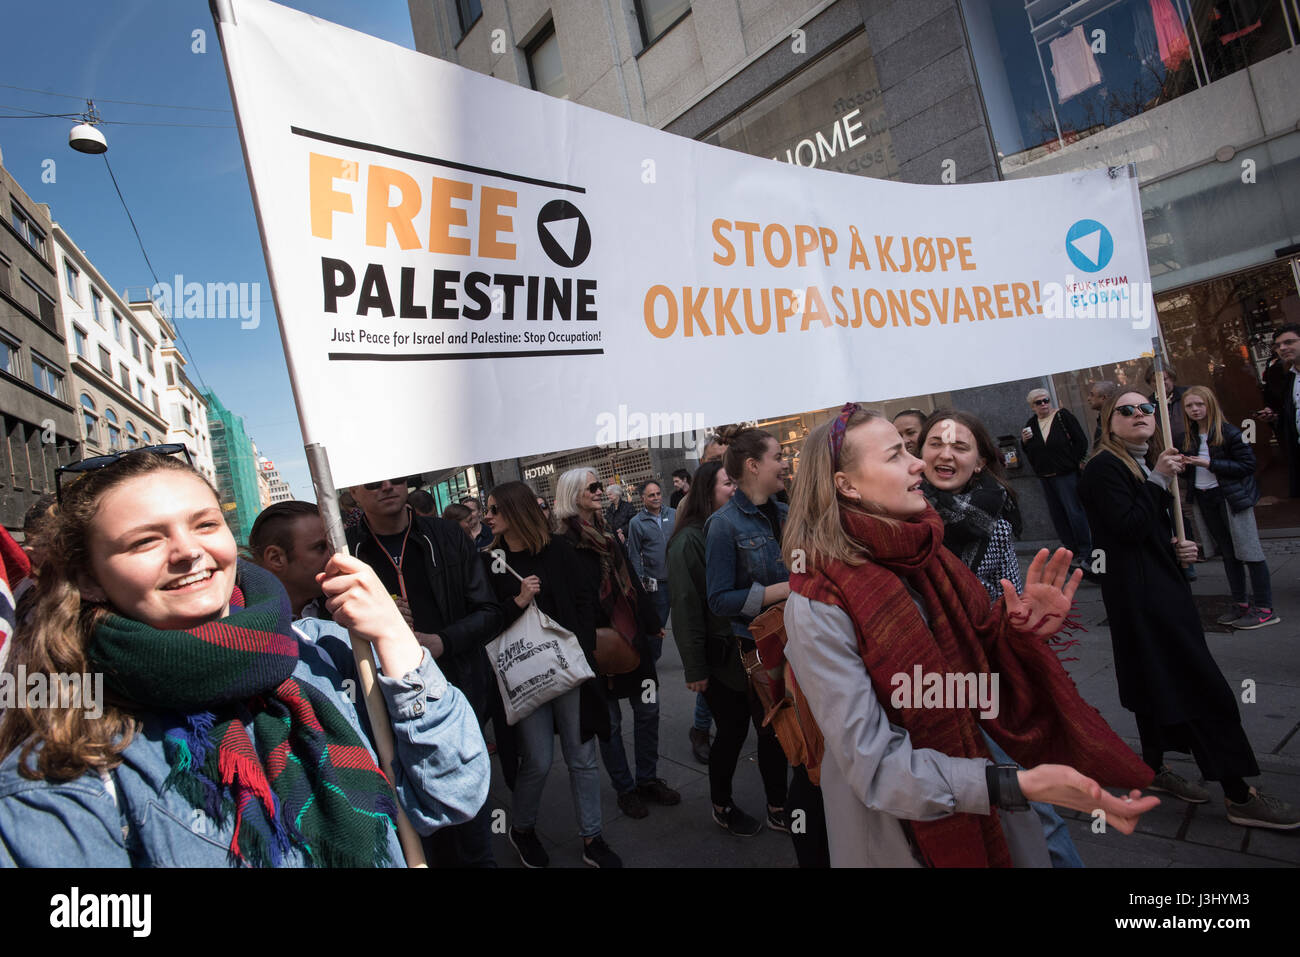 Activists carry a banner in English and Norwegian: 'Free Palestine: Stop Buying Occupation Products' at - Stock Image